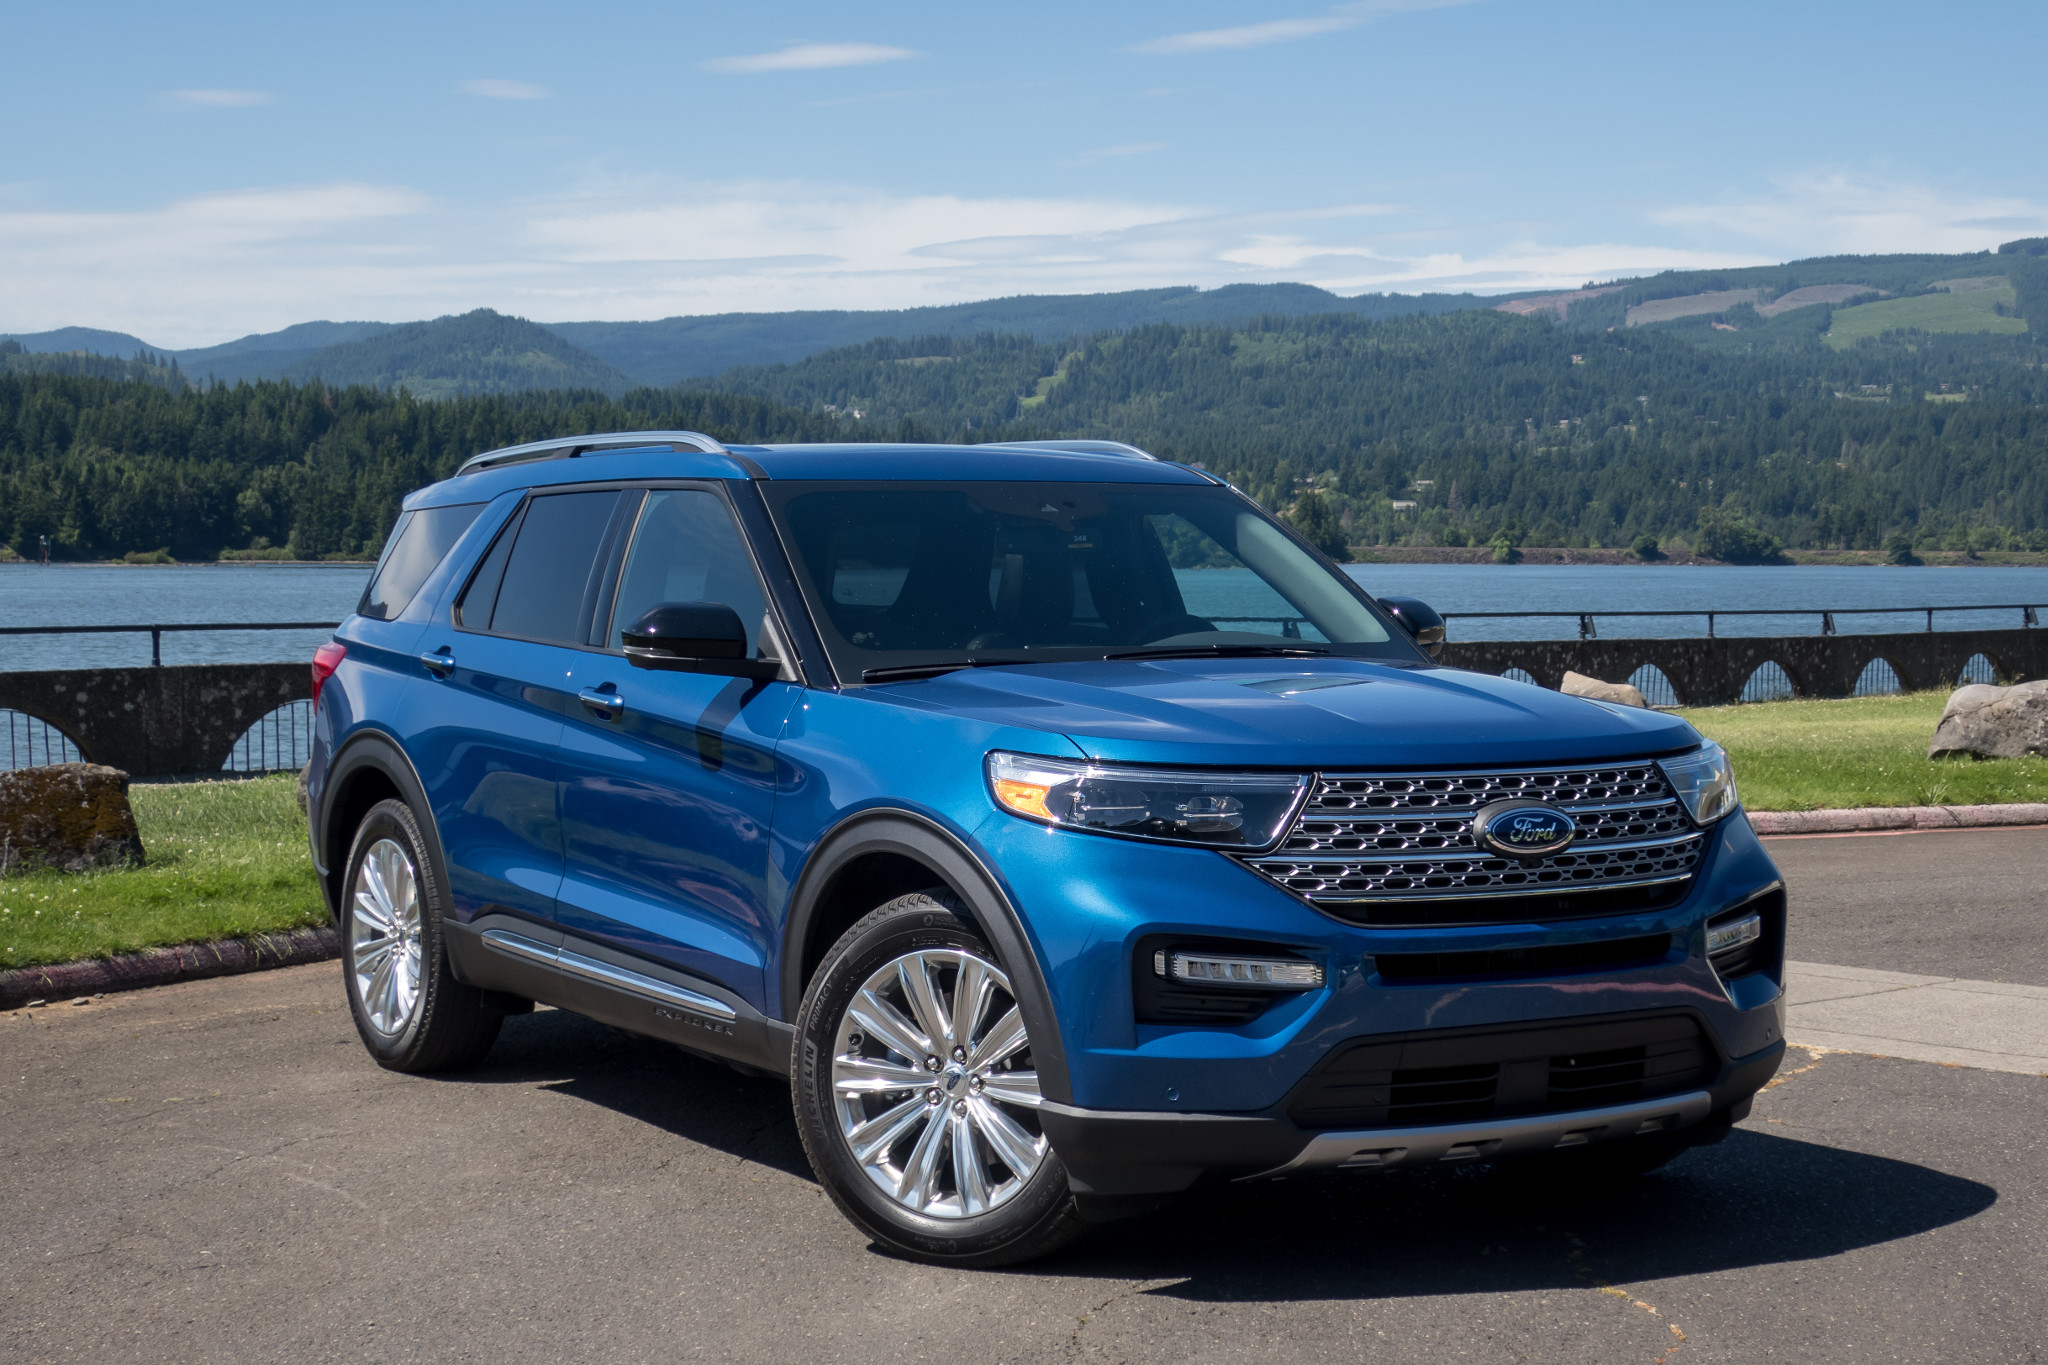 explorer ford 2021 atlas hybrid 2022 territory cars limited release date drivetrain cargo exterior charting drive feature safety space interior